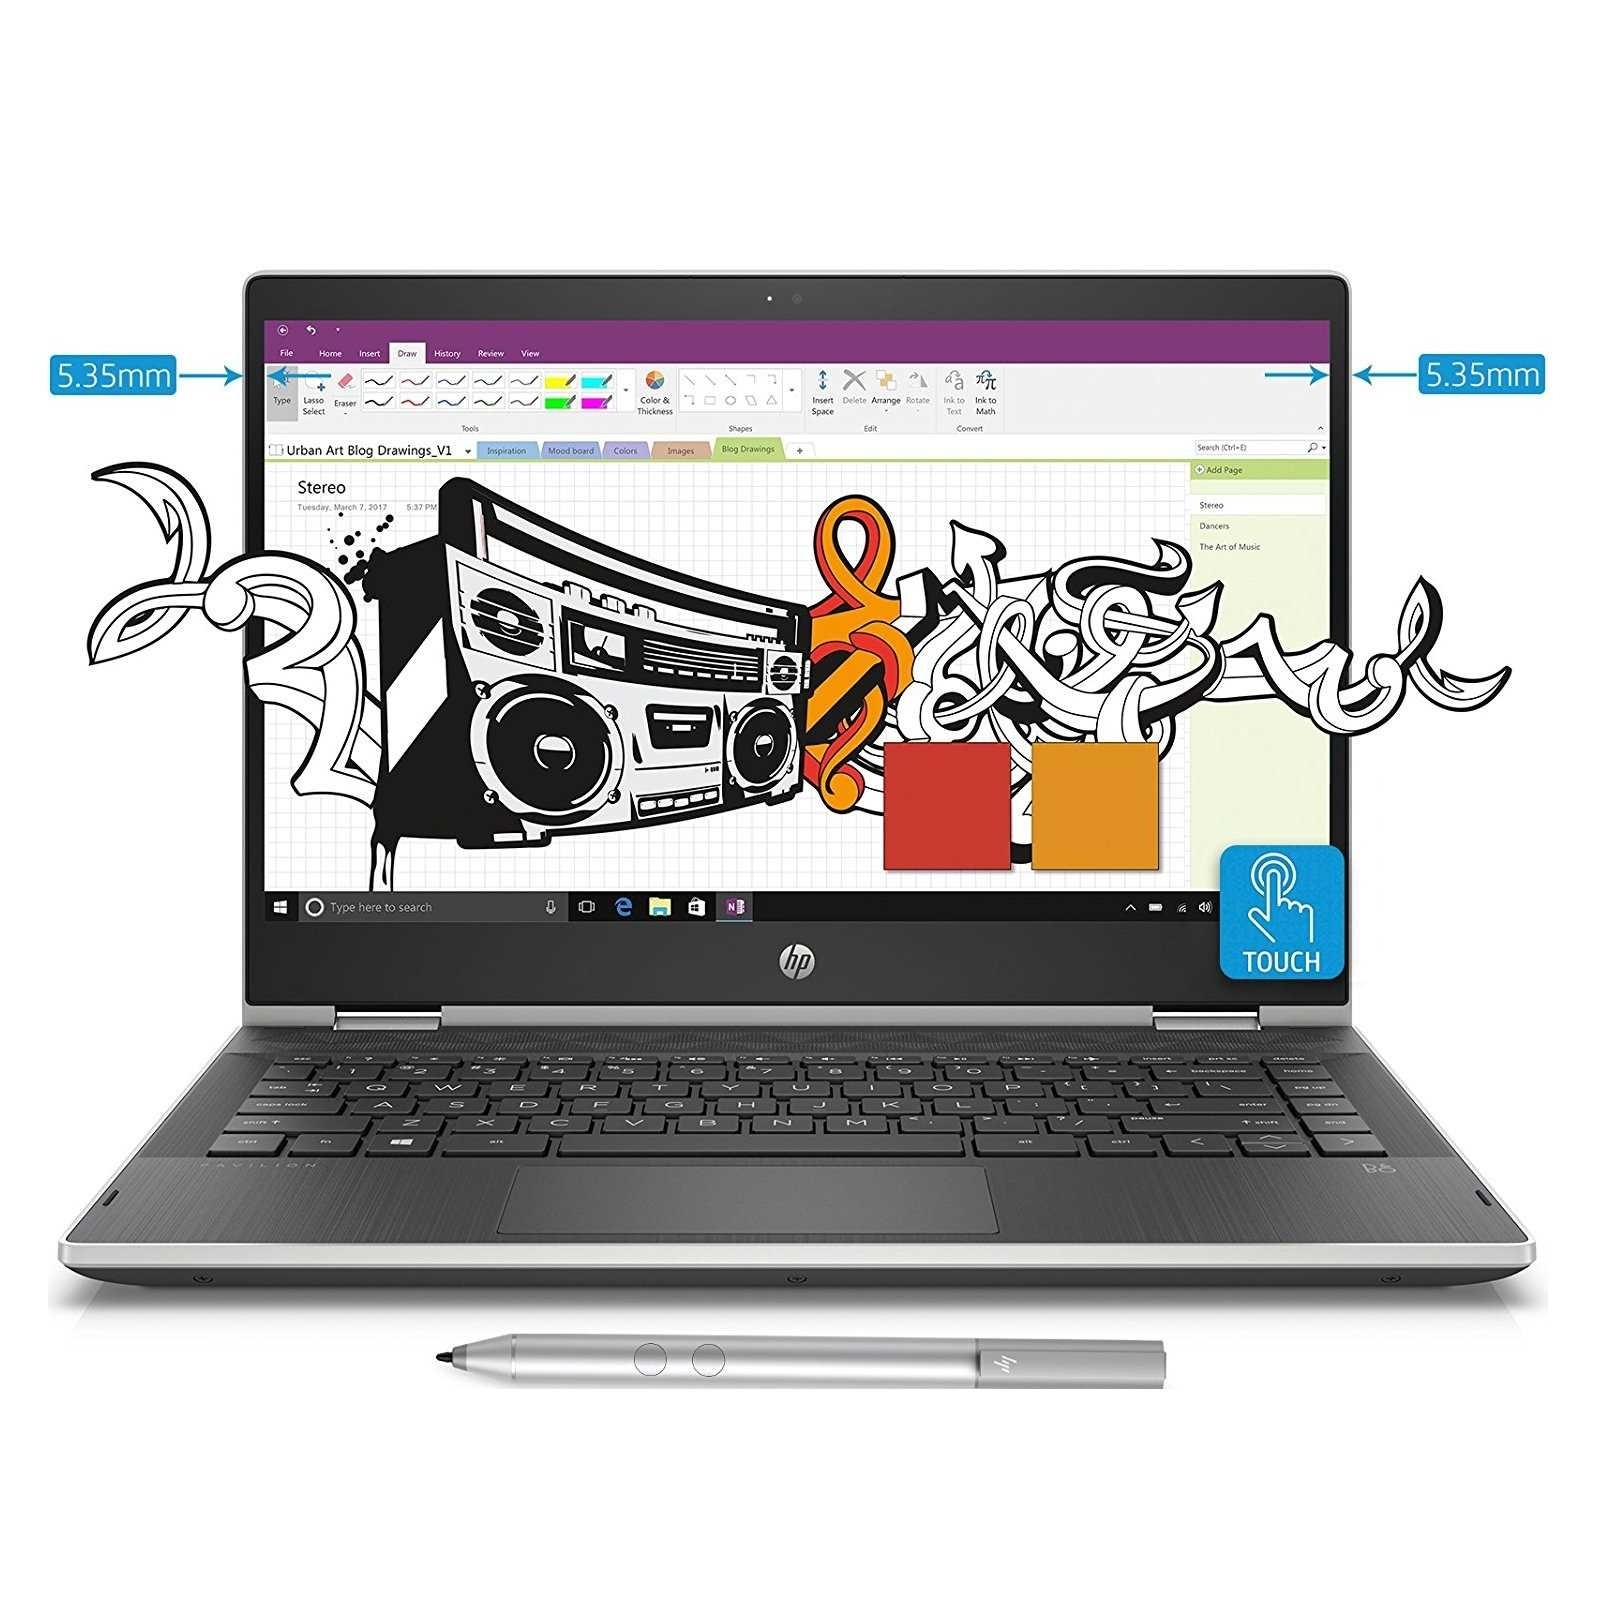 Refurbished laptops & desktops - HP Pav X360  Convert Refurbished 14-Cd0077Tu In Intel Core I3 8TH Gen 14-Inch Touchscreen 2-In-1 FHD THin And Light Laptop (4GB/1TB+8GB SSHD/Windows 10 Home/Natural Silver/1.59 Kg)